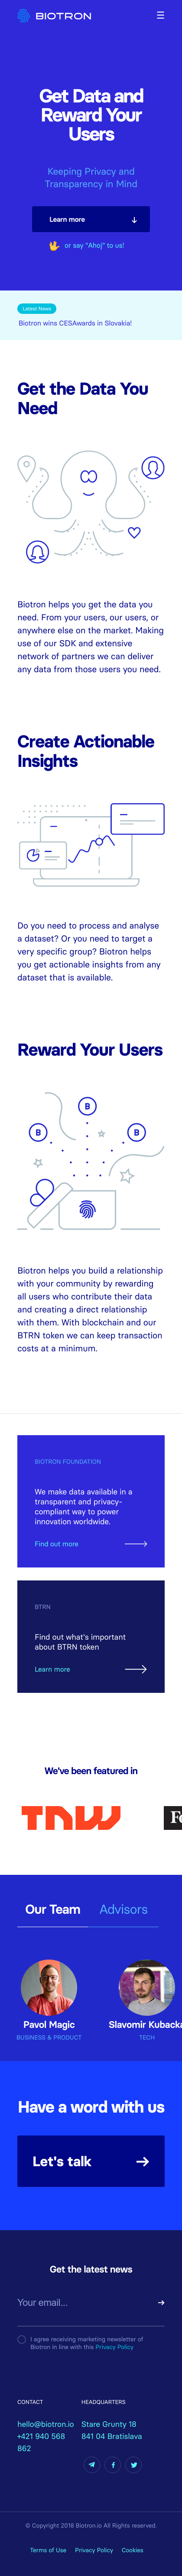 Example of Design for Business & Industrial, Mobile Landing Page by biotron.io | Mobile Landing Page Design